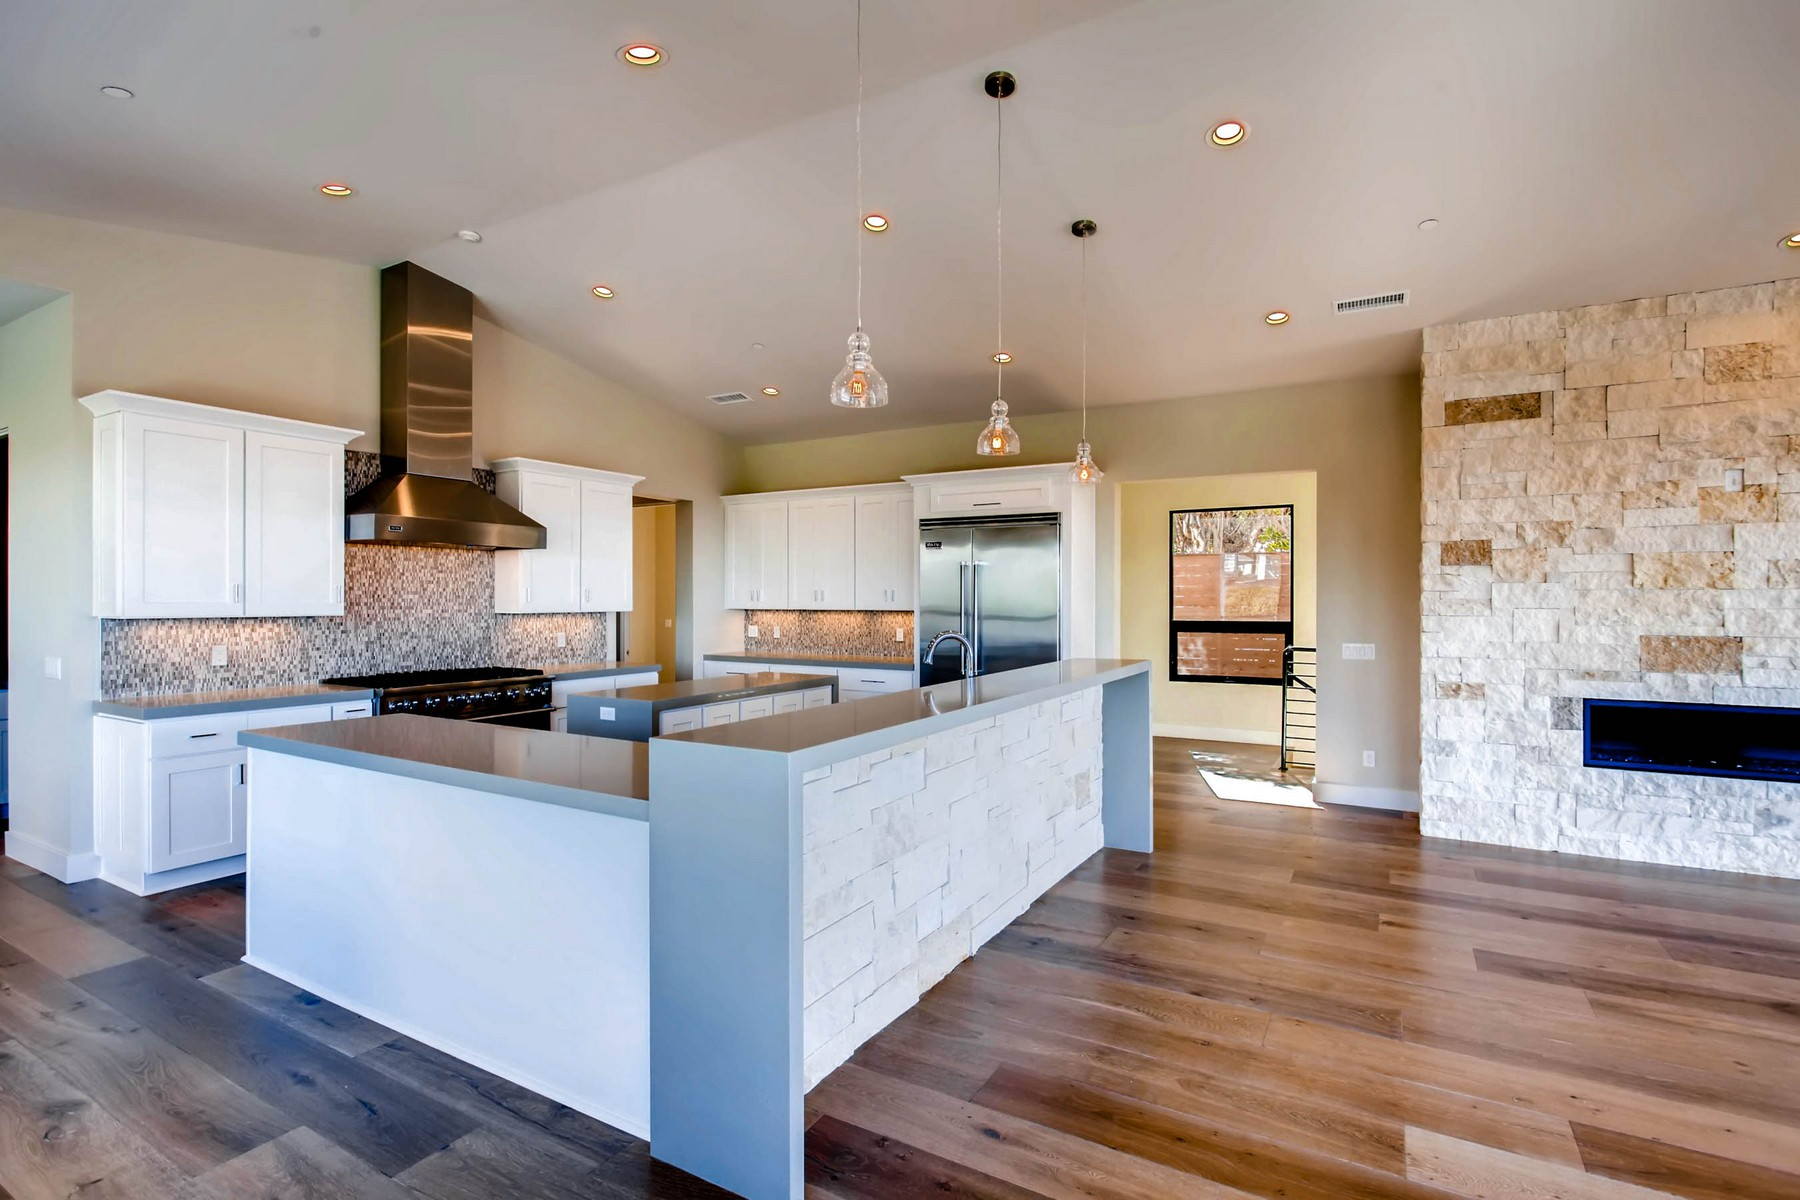 Additional photo for property listing at 1222 Muirlands Vista Way  La Jolla, Californie 92037 États-Unis